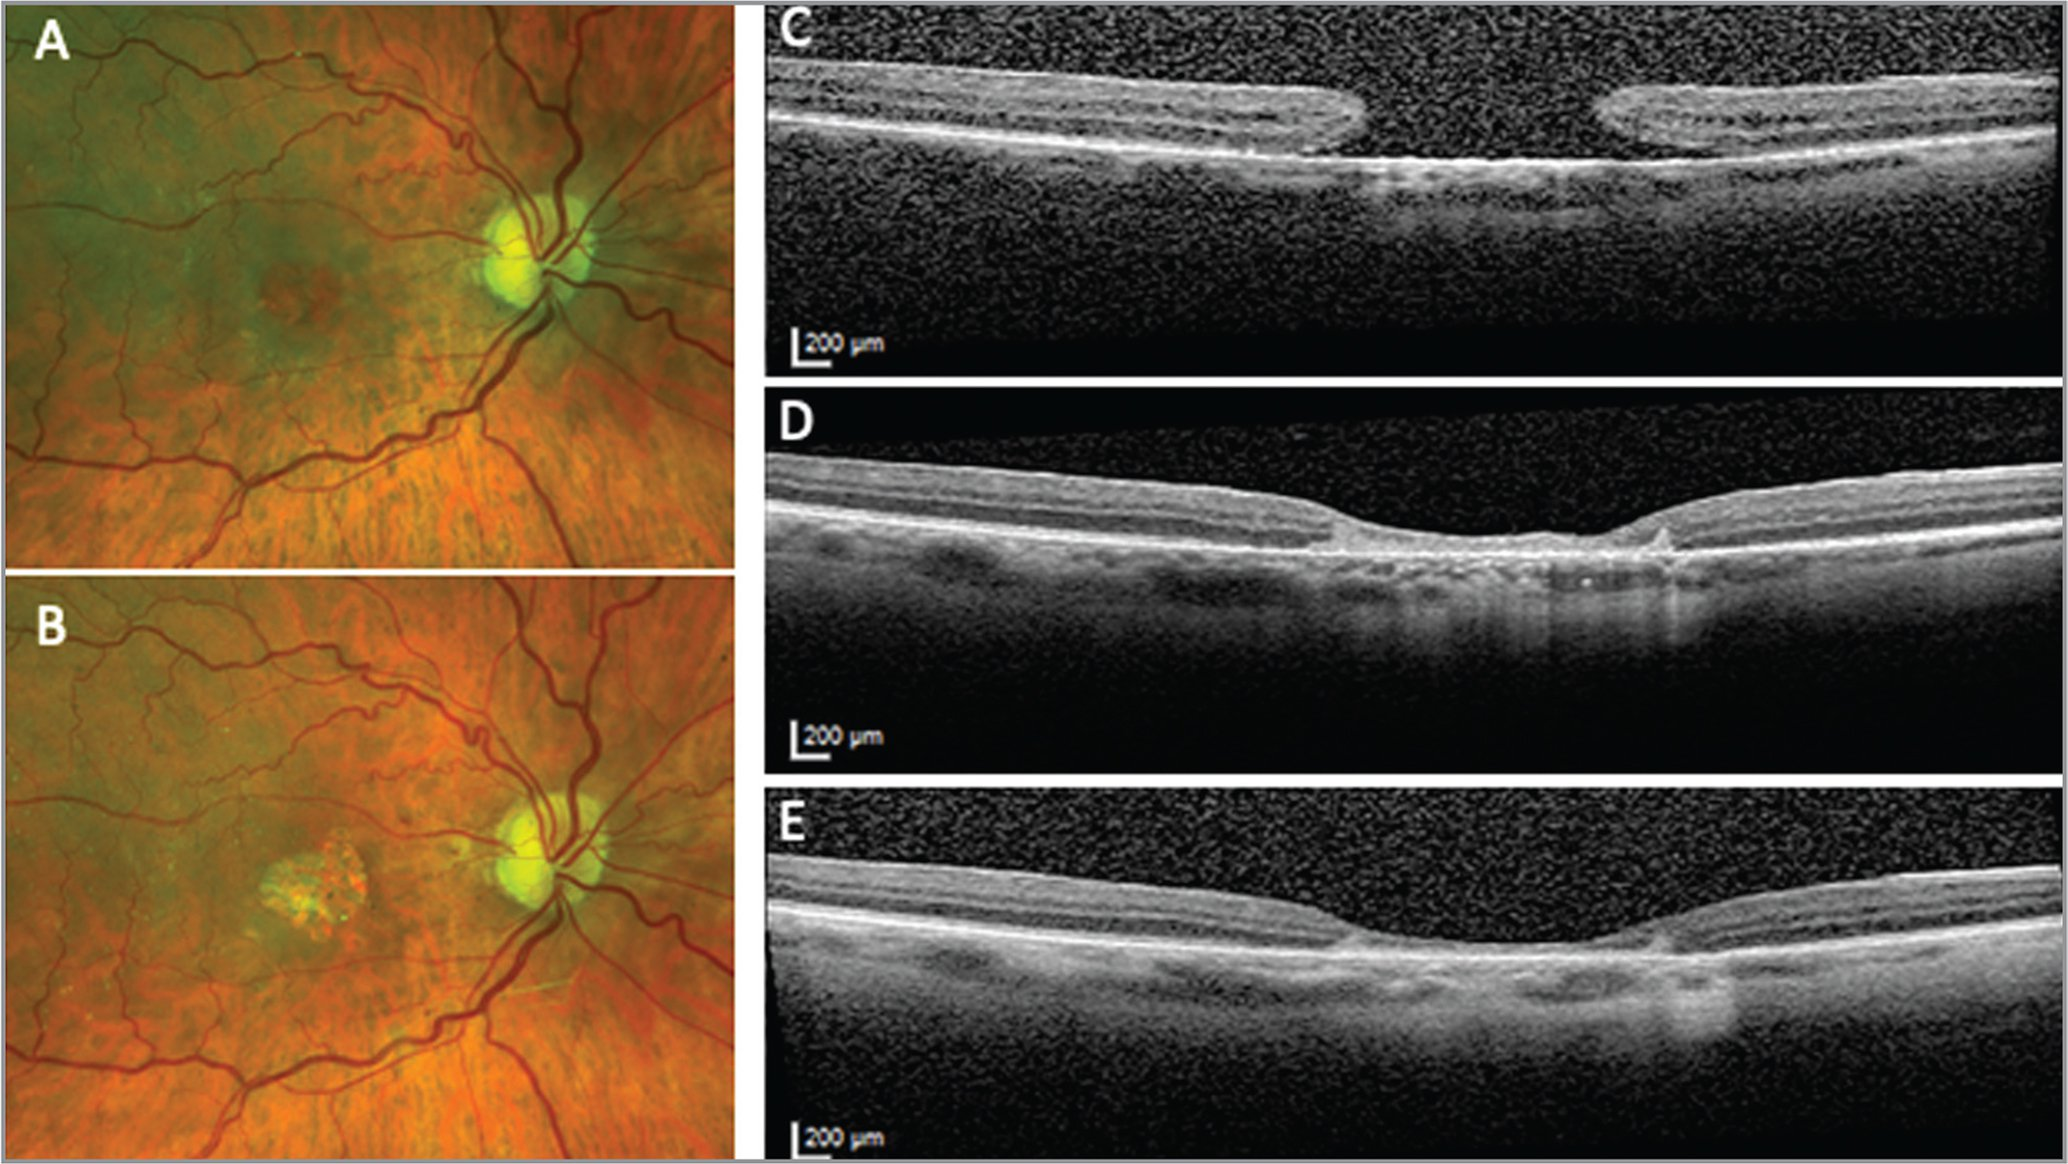 Subretinal human amniotic membrane (AM) graft for a chronic, large macular hole (MH). A 65-year-old woman presented with a 1,310 µm diameter MH of 3 years' duration that had previously failed repair. A 2-mm human AM graft was placed in a subretinal position. Visual acuity improved from 20/100 to 20/60. (A) Widefield fundus photography of preoperative and (B) postoperative MH. (C) Optical coherence tomography scans show preoperative large MH with (D) closure of the hole at 2 weeks and (E) improving retinal morphology at 10 weeks.